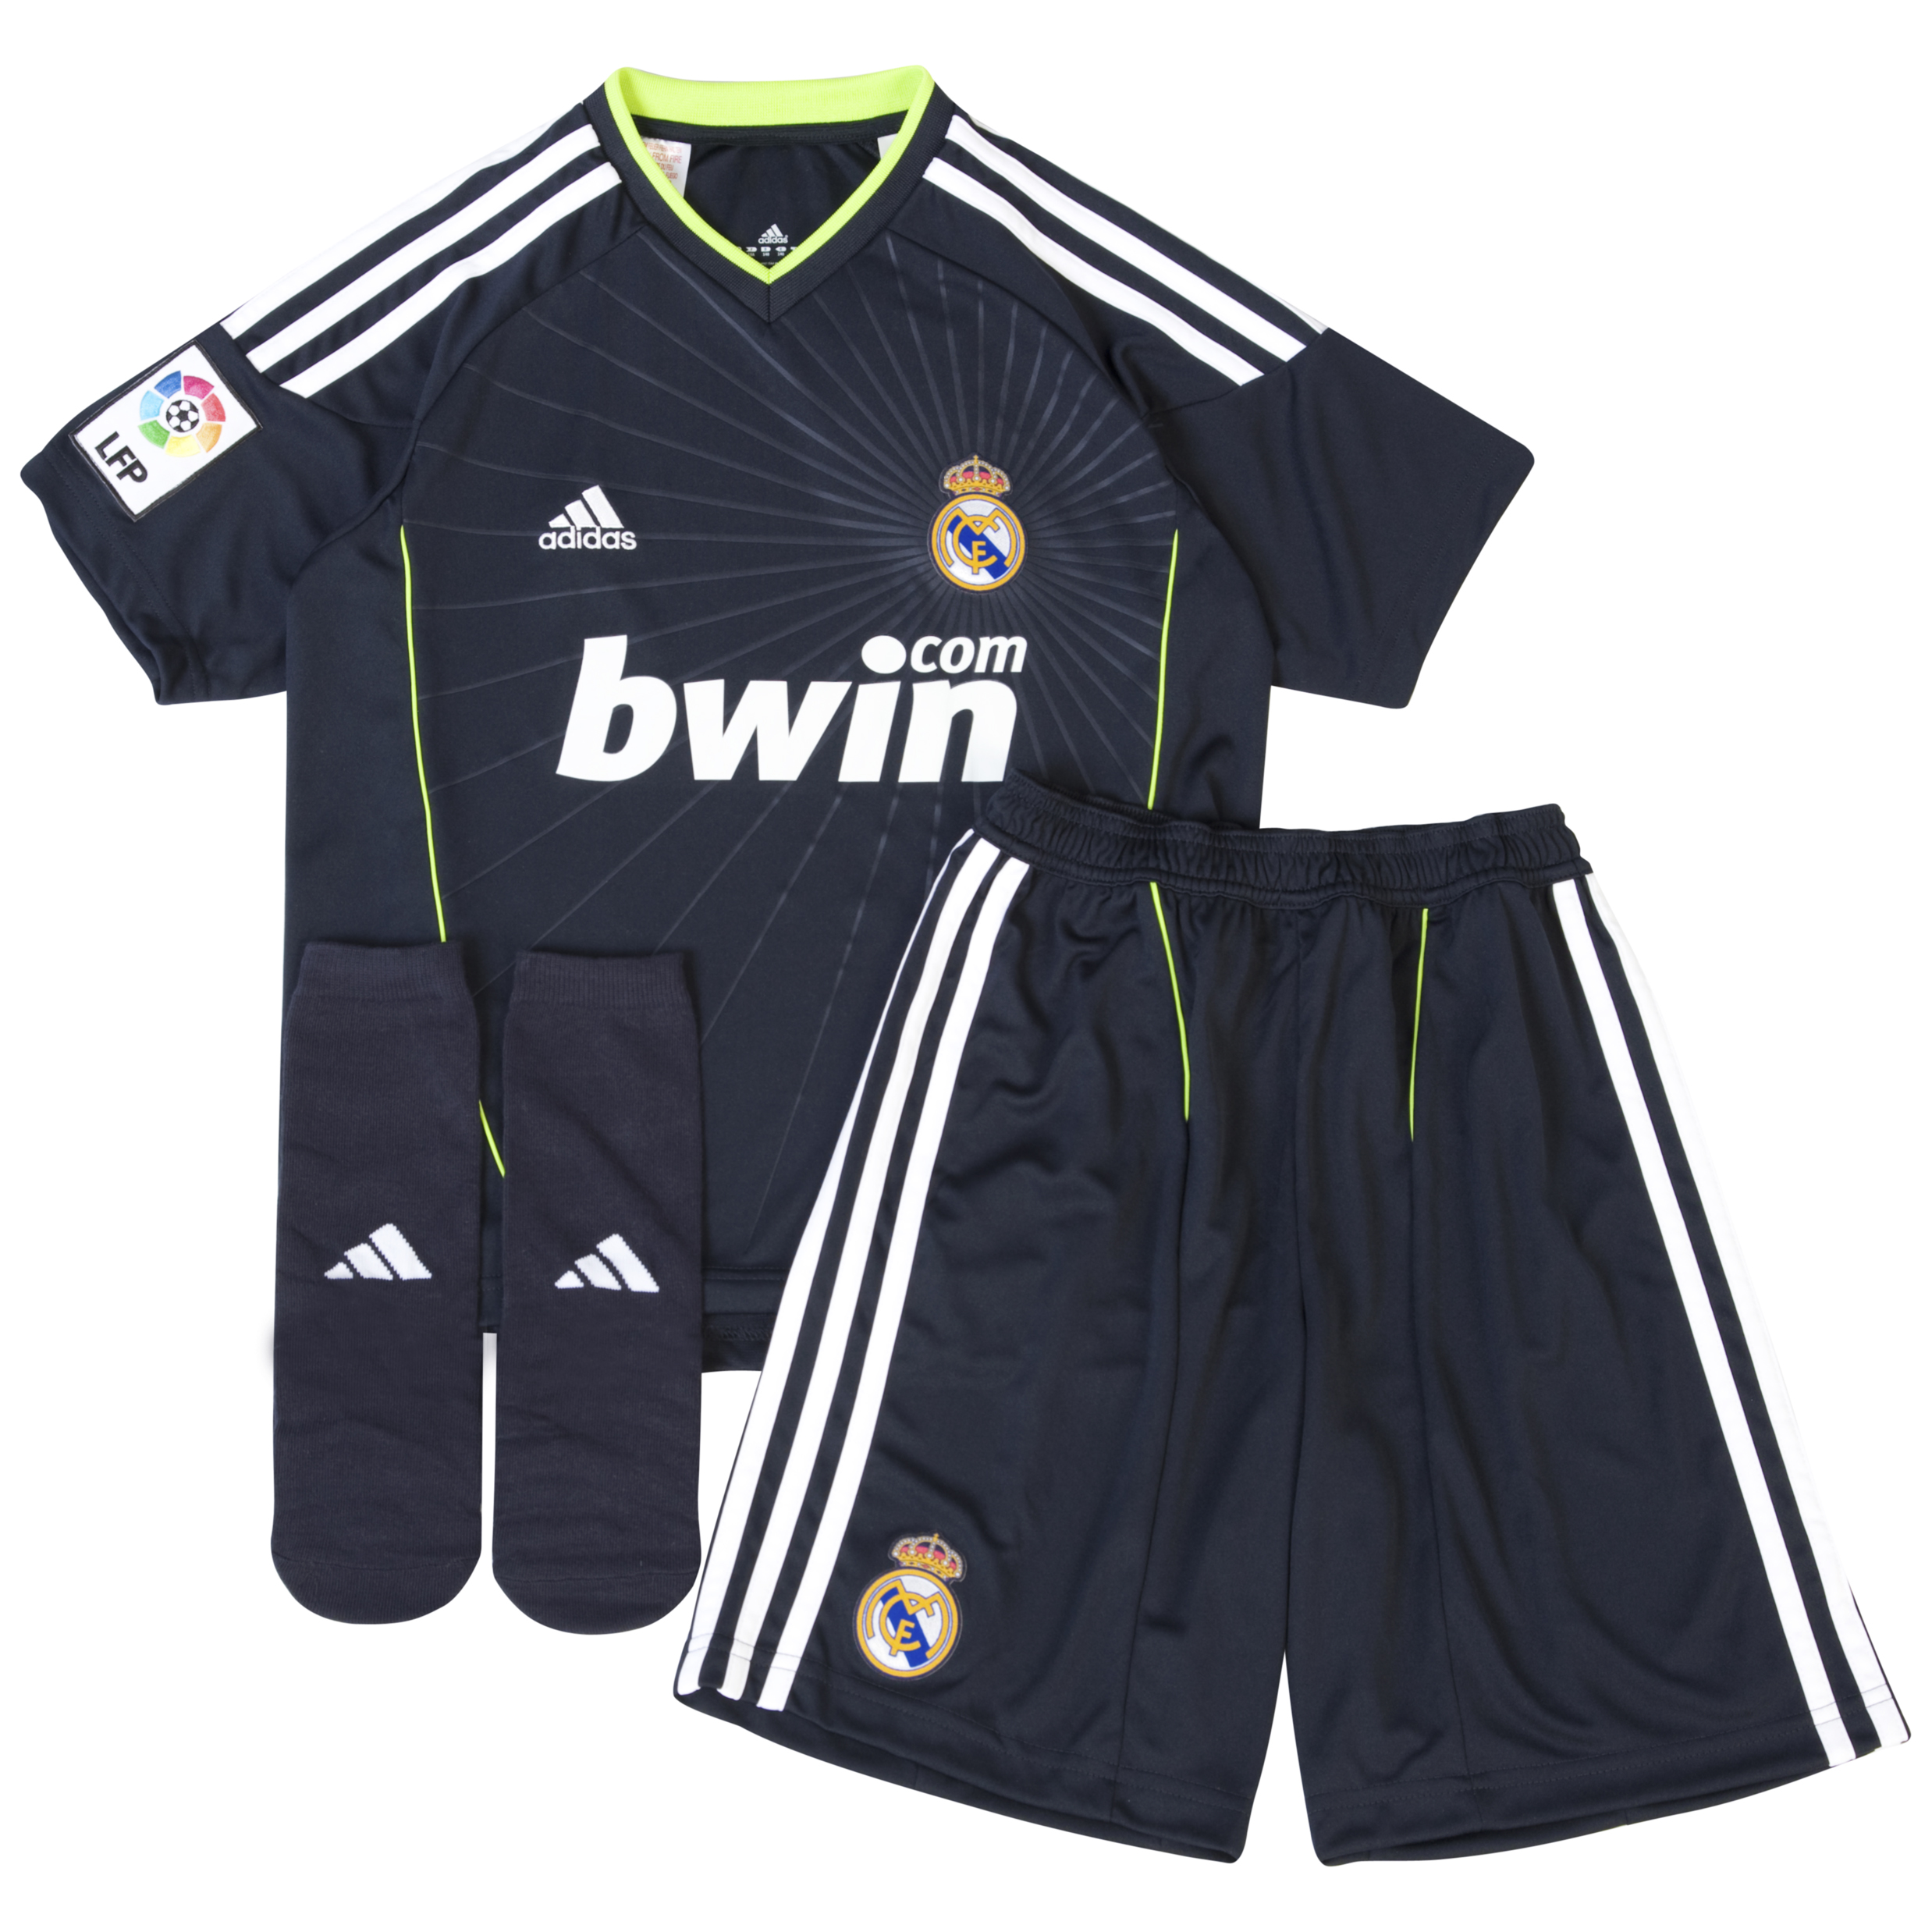 Real Madrid Away Minikit Pack 2010/11